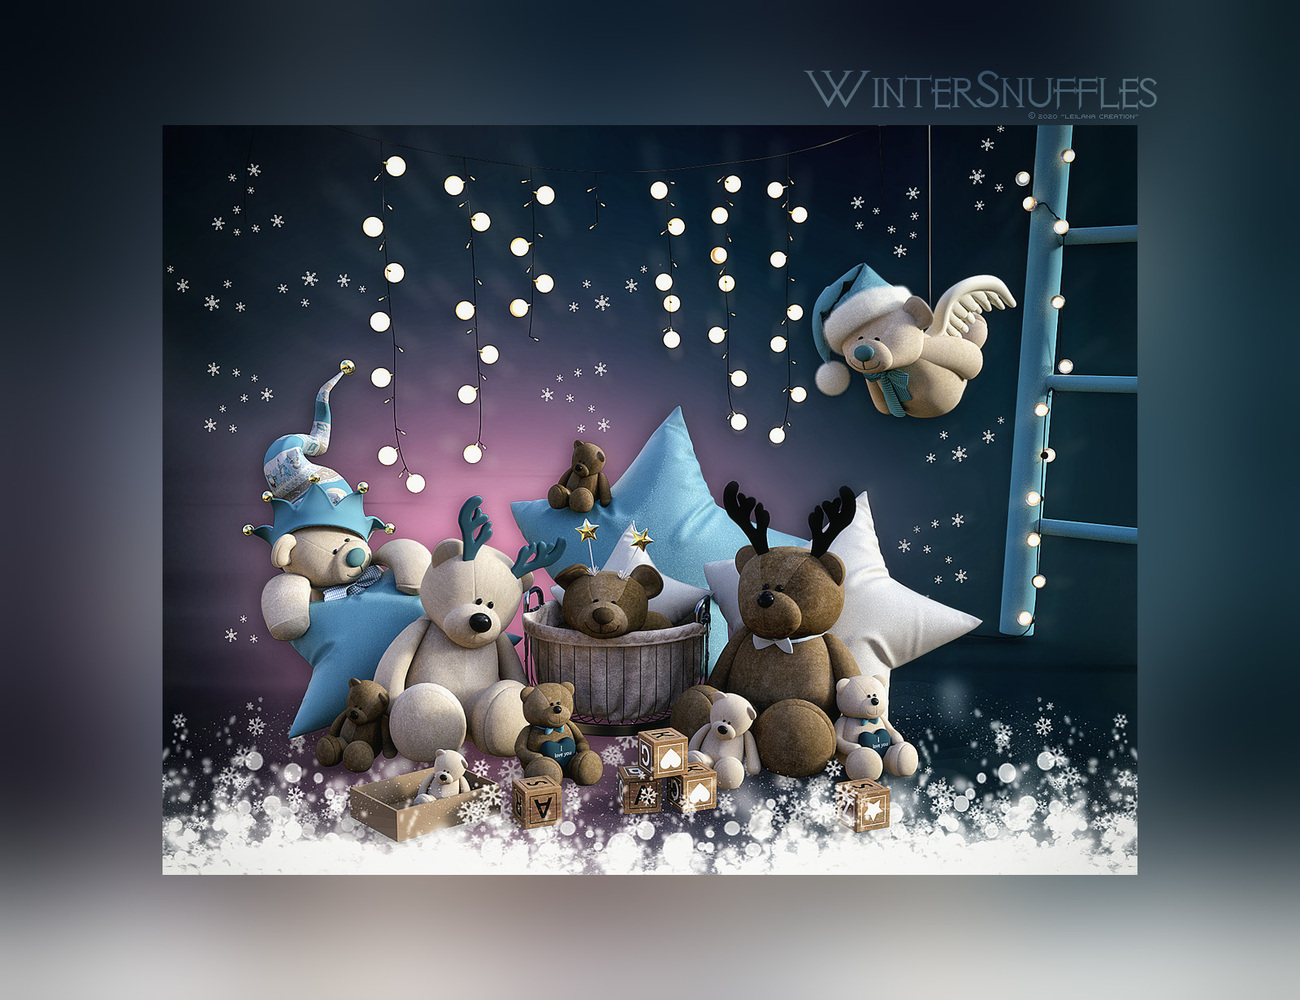 ~*WinterSnuffles*~ by Leilana